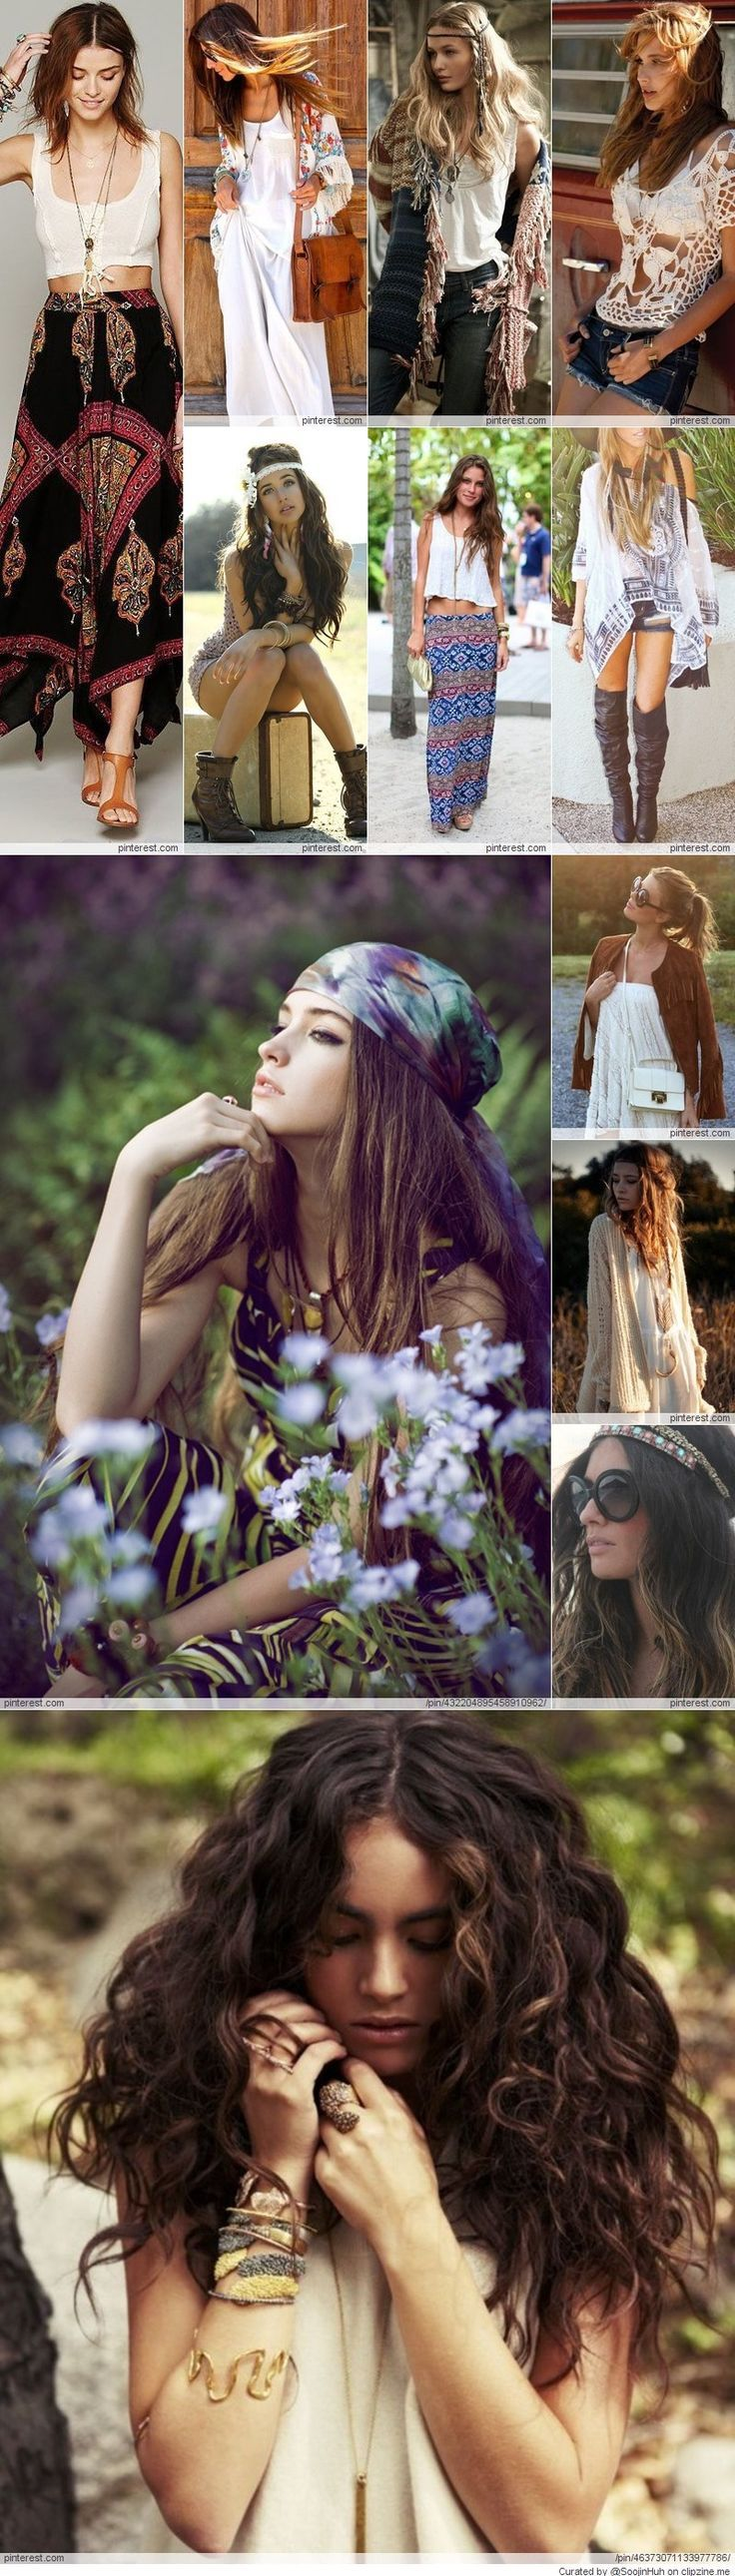 Bohemian Style.....the inner hippie in me is ready to come out. Every outfit is so cute